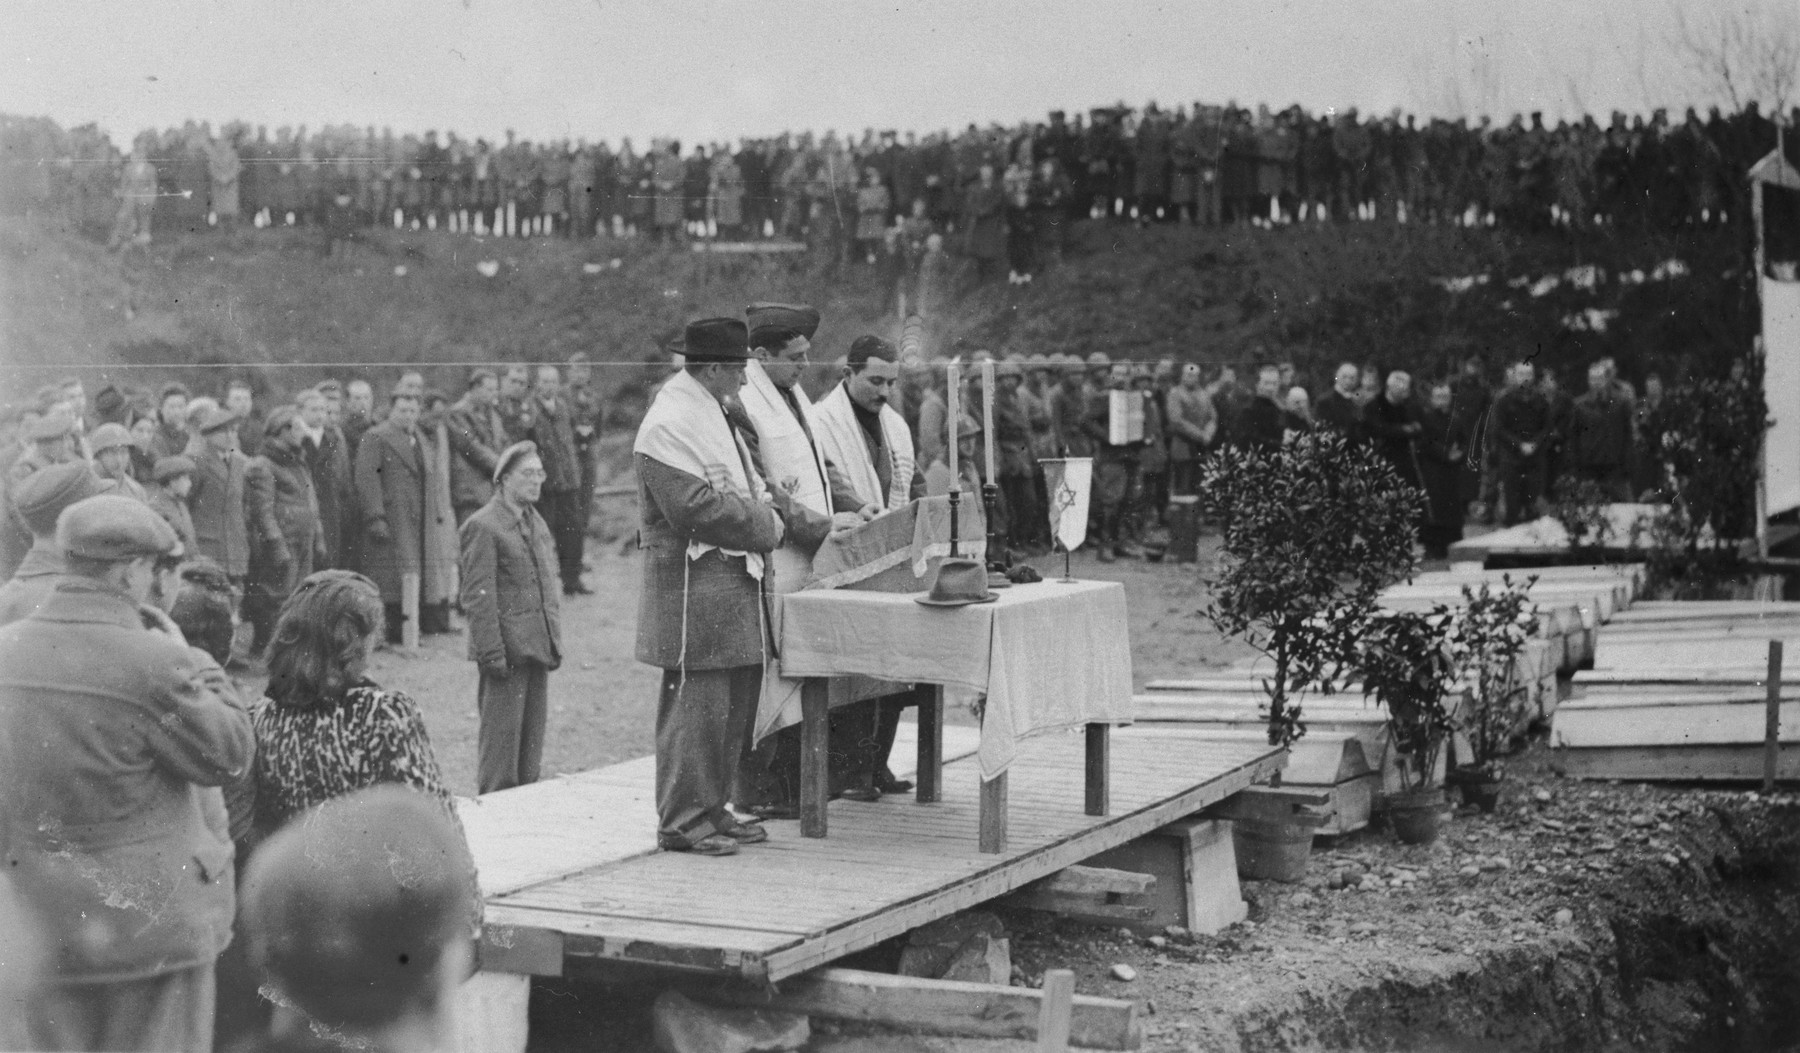 Three men draped in tallitot lead prayers at the dedication of a memorial at the site of the Pocking concentration camp.